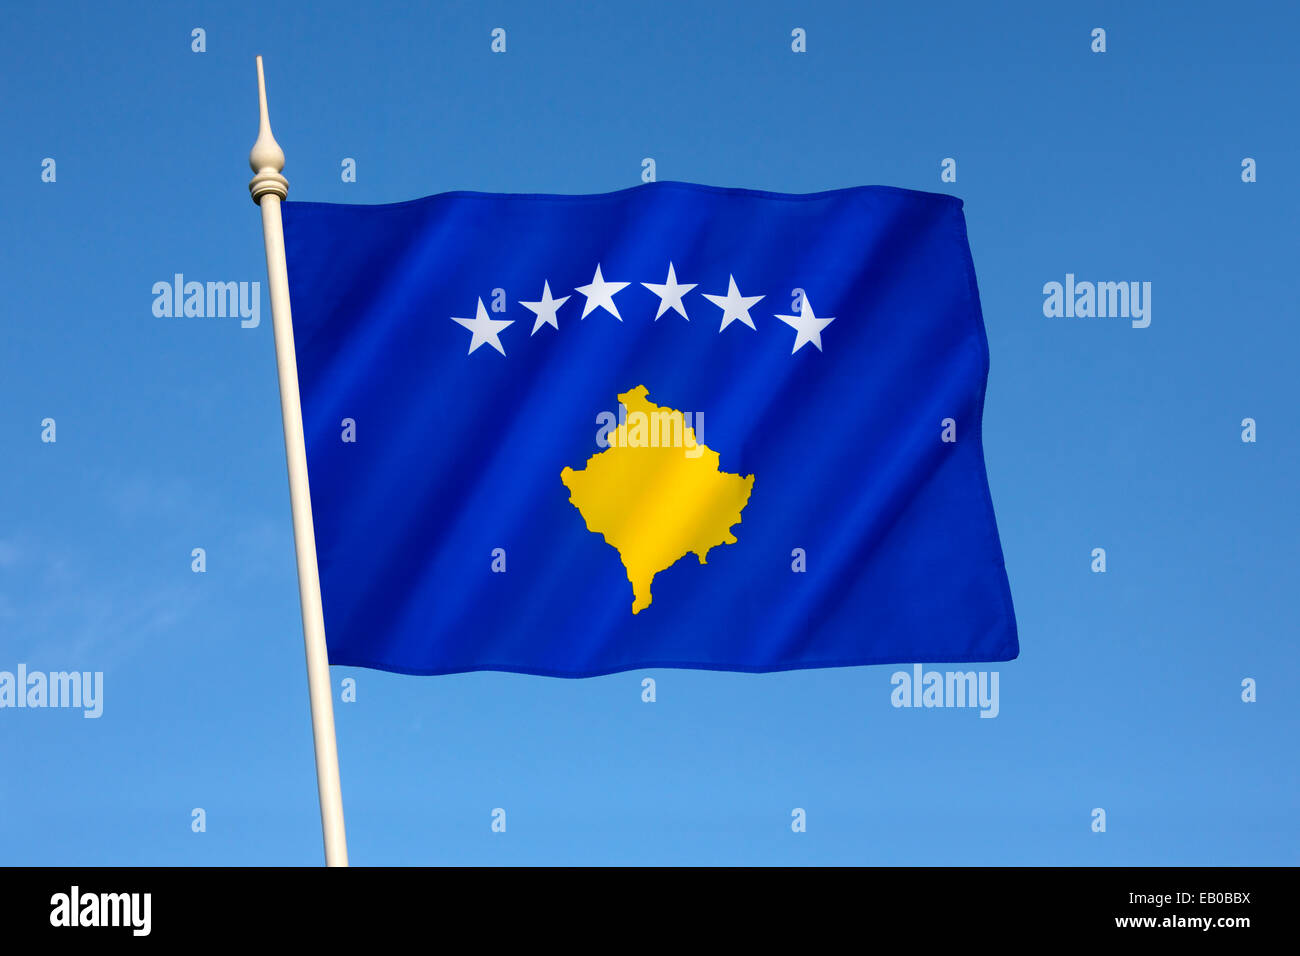 The flag of the Republic of Kosovo - Stock Image